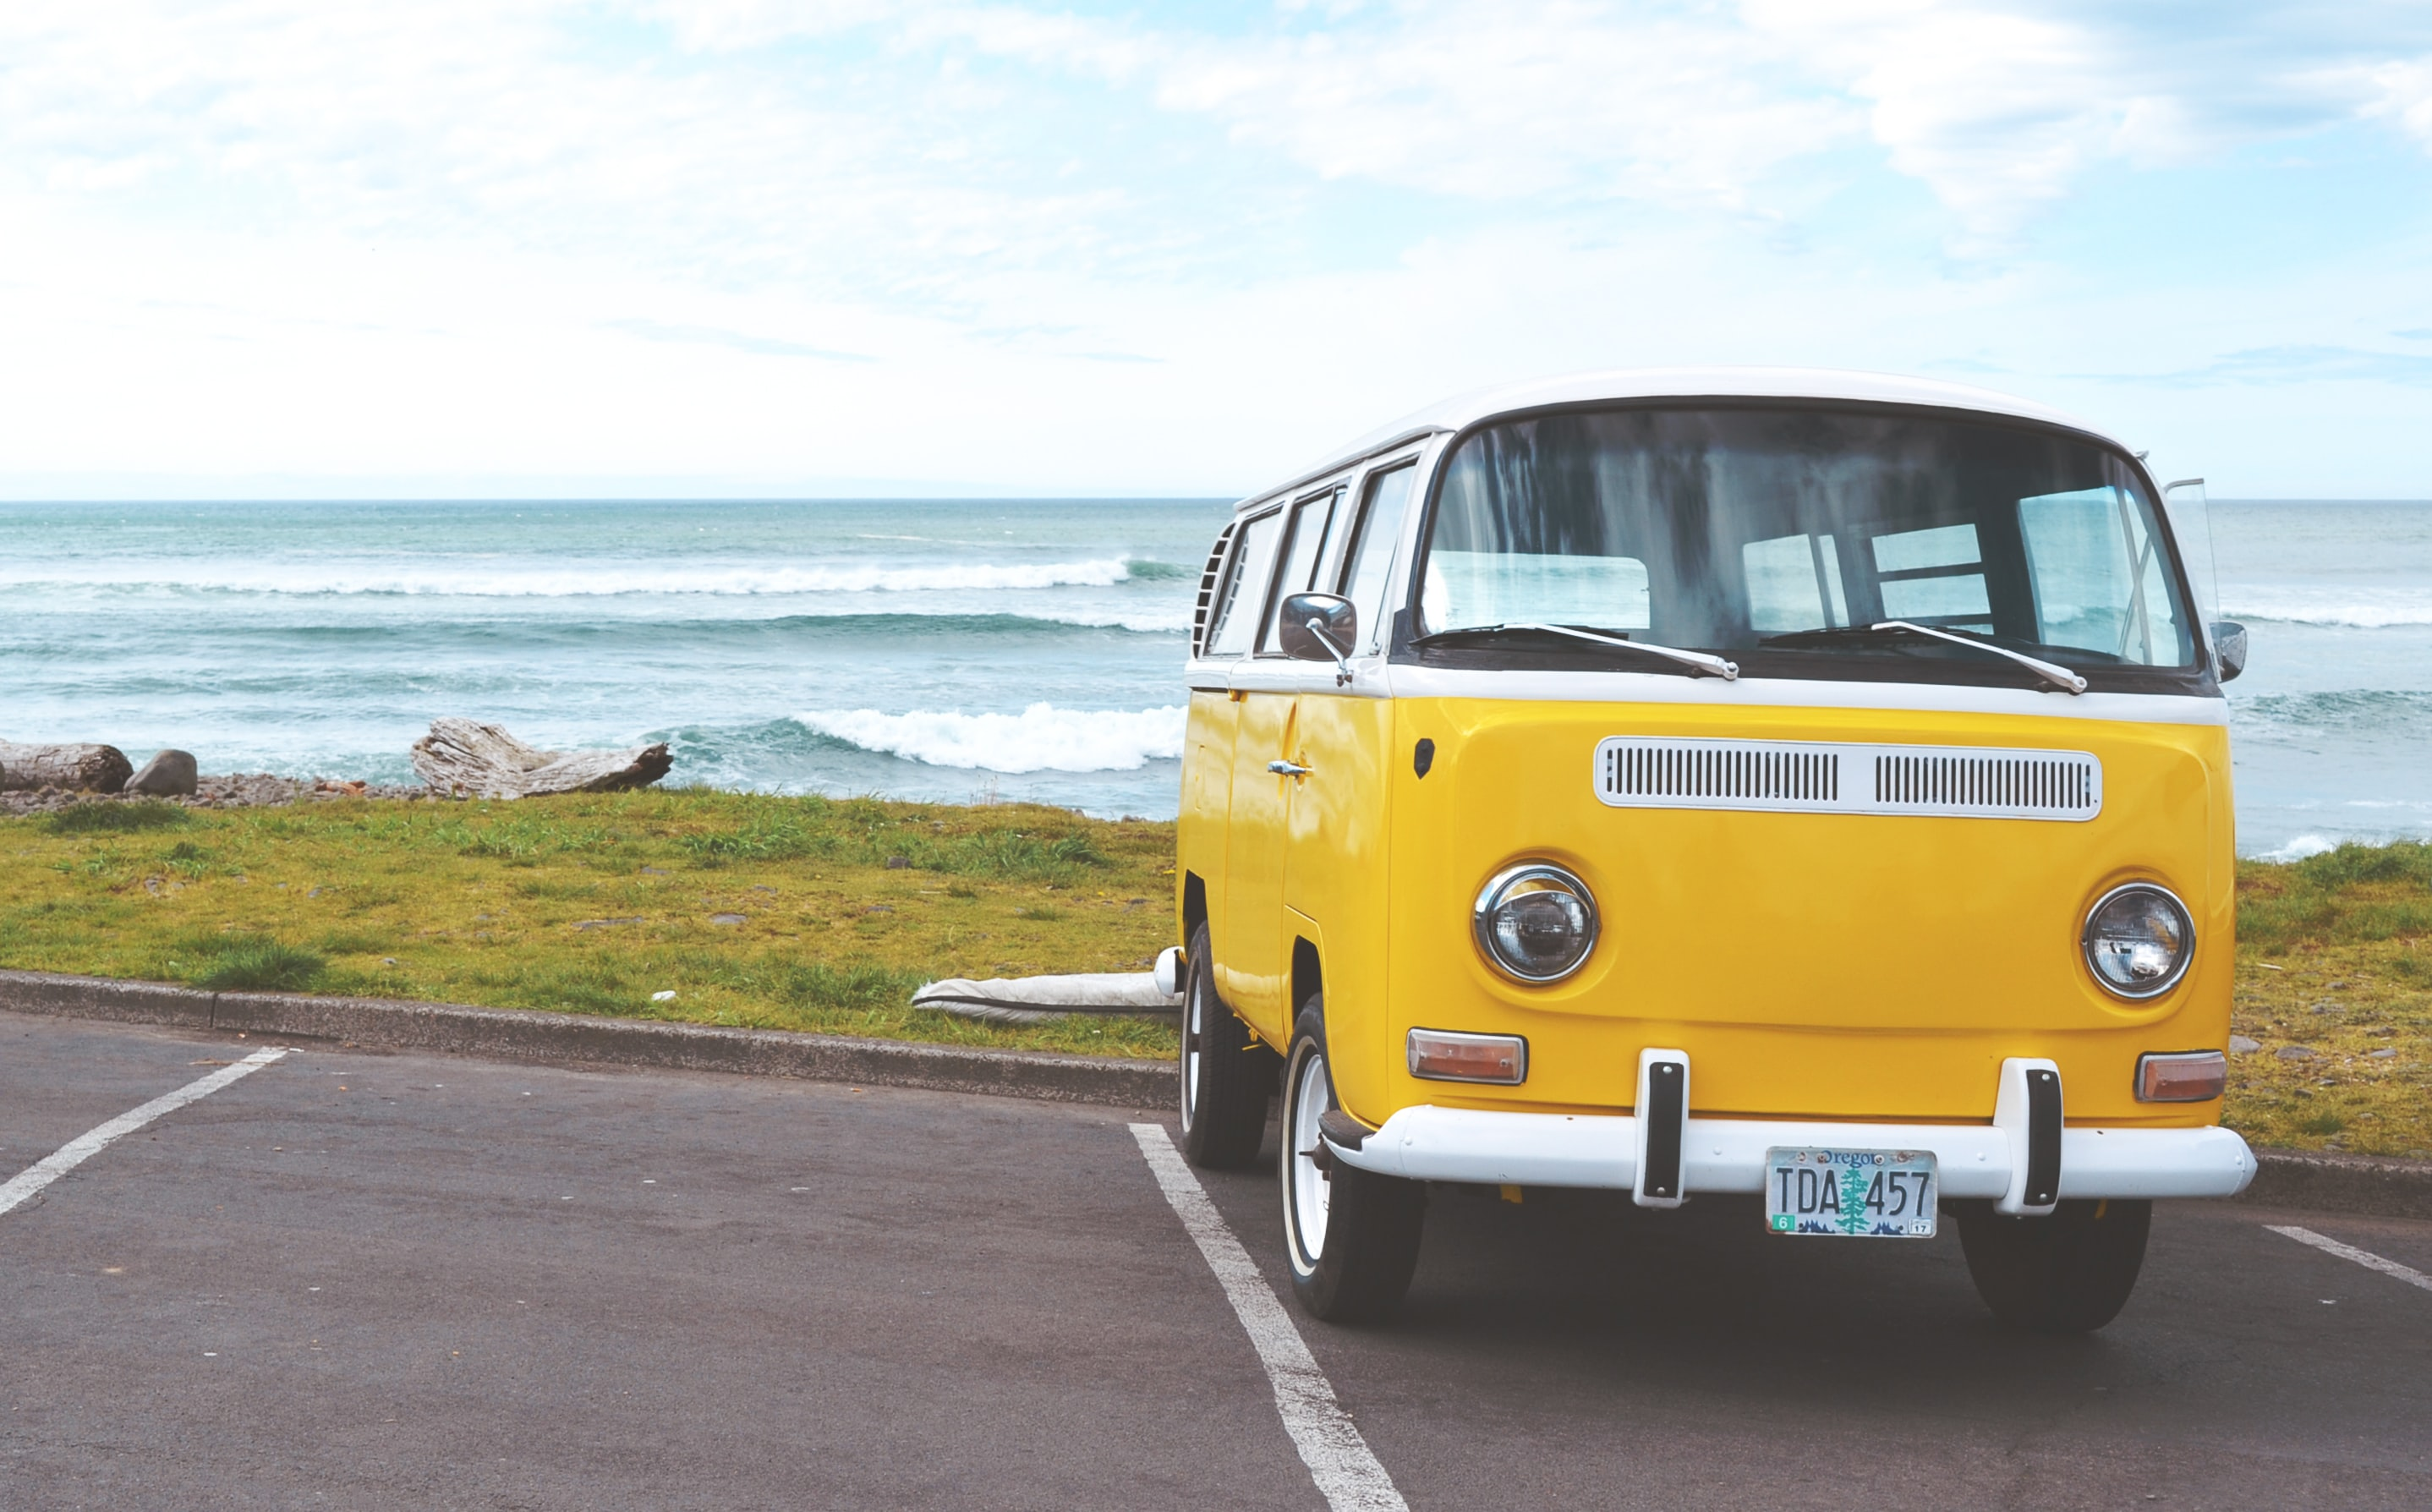 A white and yellow Volkswagen bus in a parking lot by the seaside